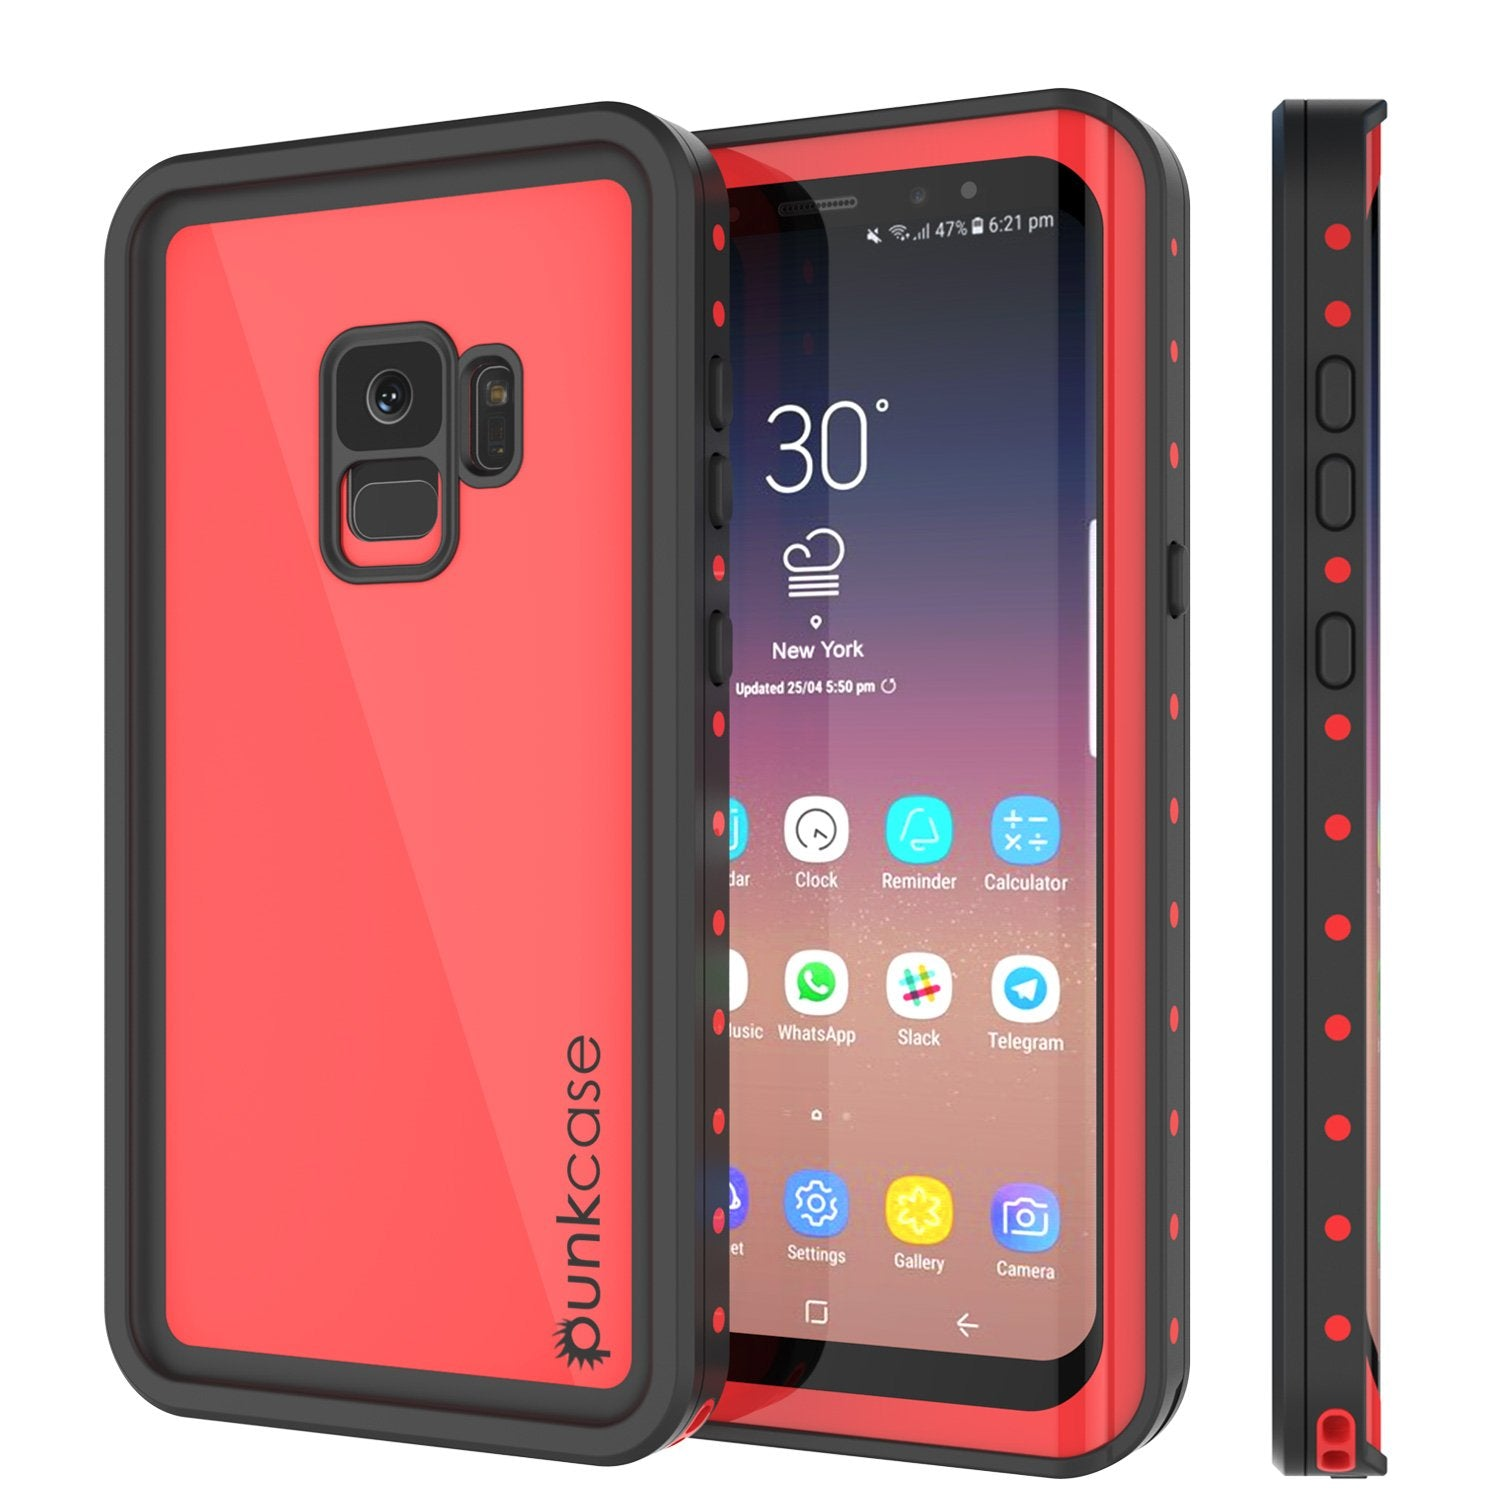 Galaxy S9 Waterproof Case PunkCase StudStar Red Thin 6.6ft Underwater IP68 Shock/Snow Proof